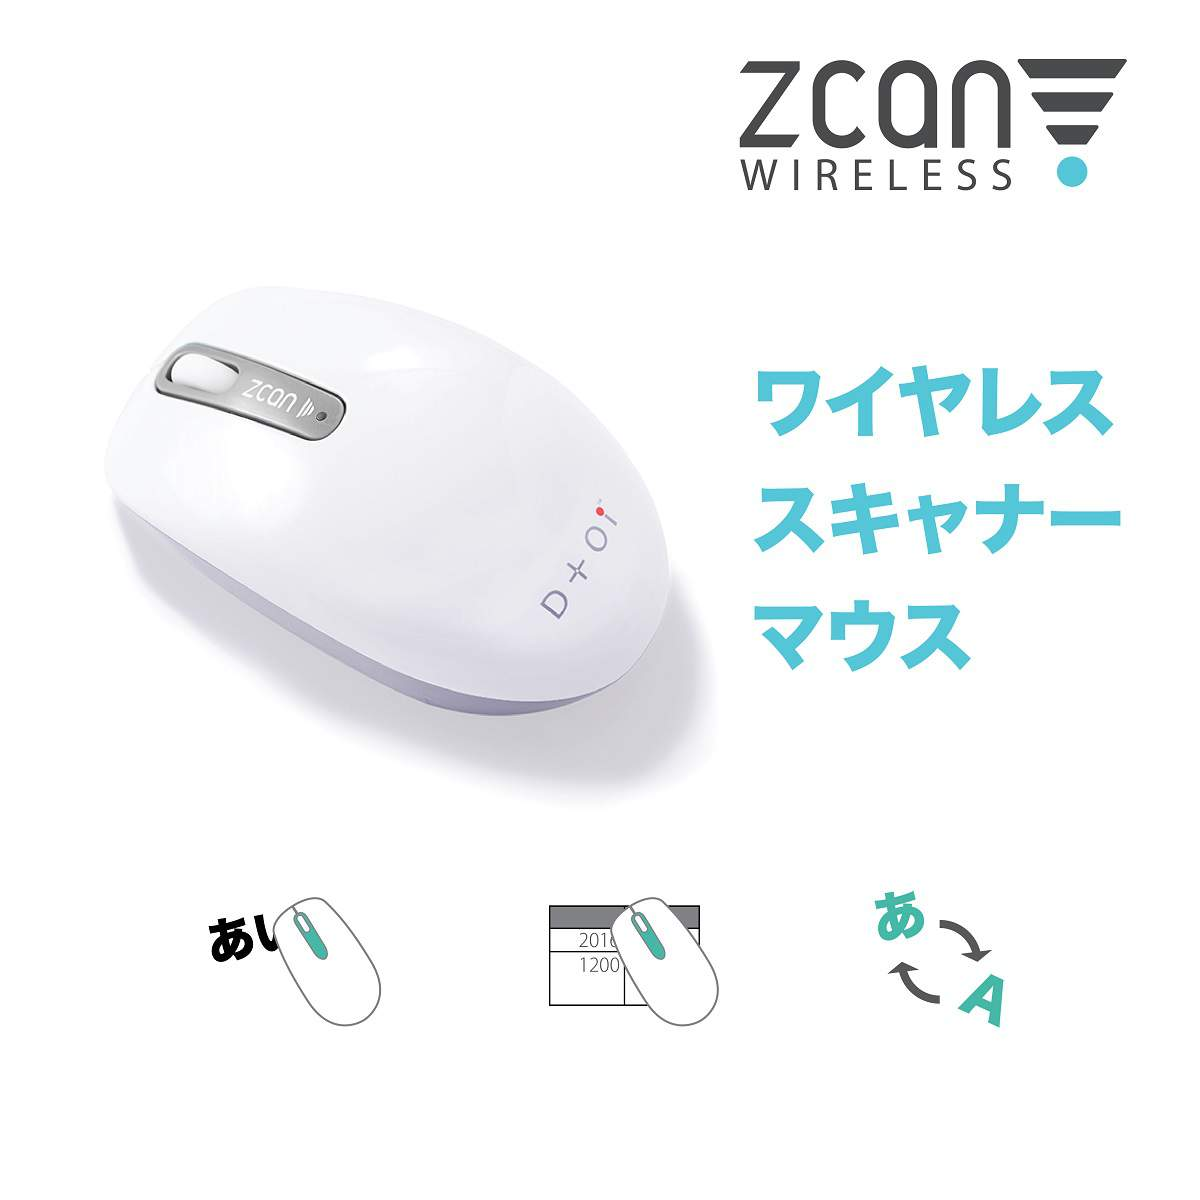 Zcan ワイヤレス